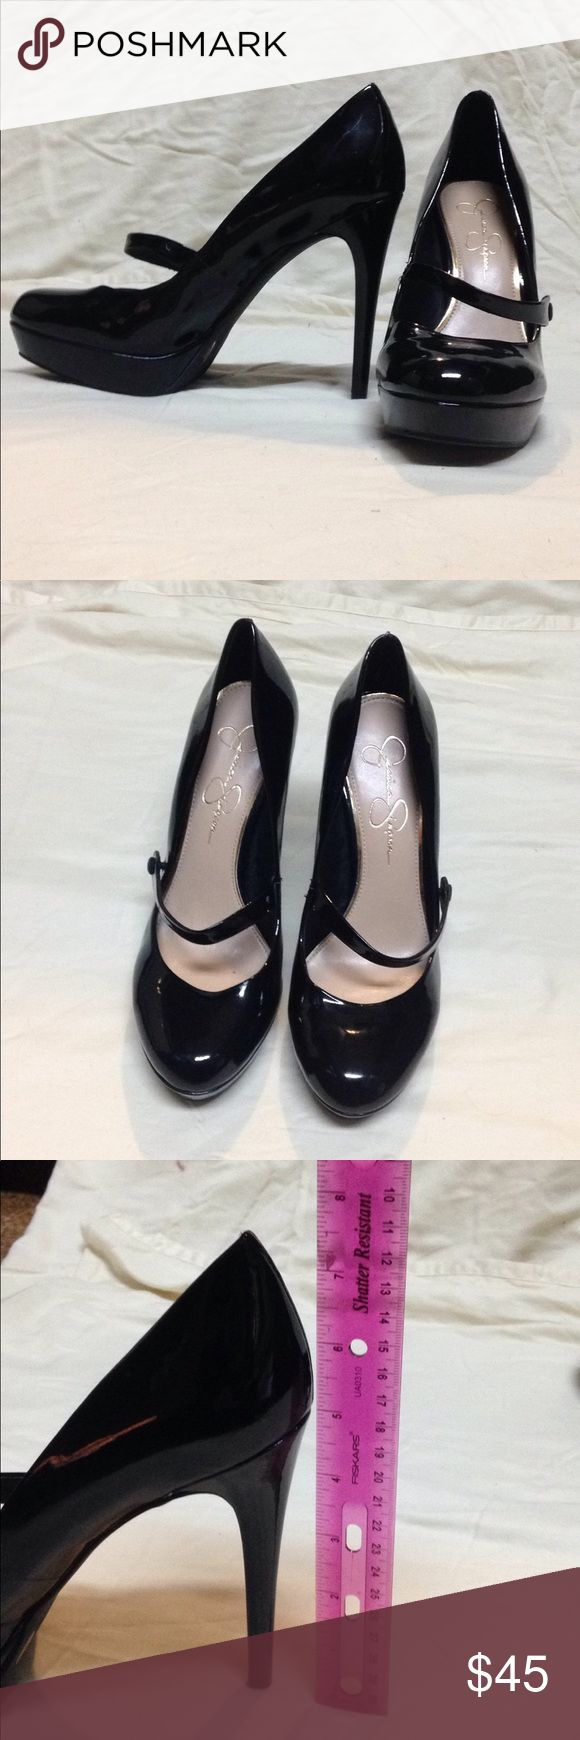 Jessica Simpson black pumps make an offer Black  Straps  9.5 Jessica Simpson Shoes Heels